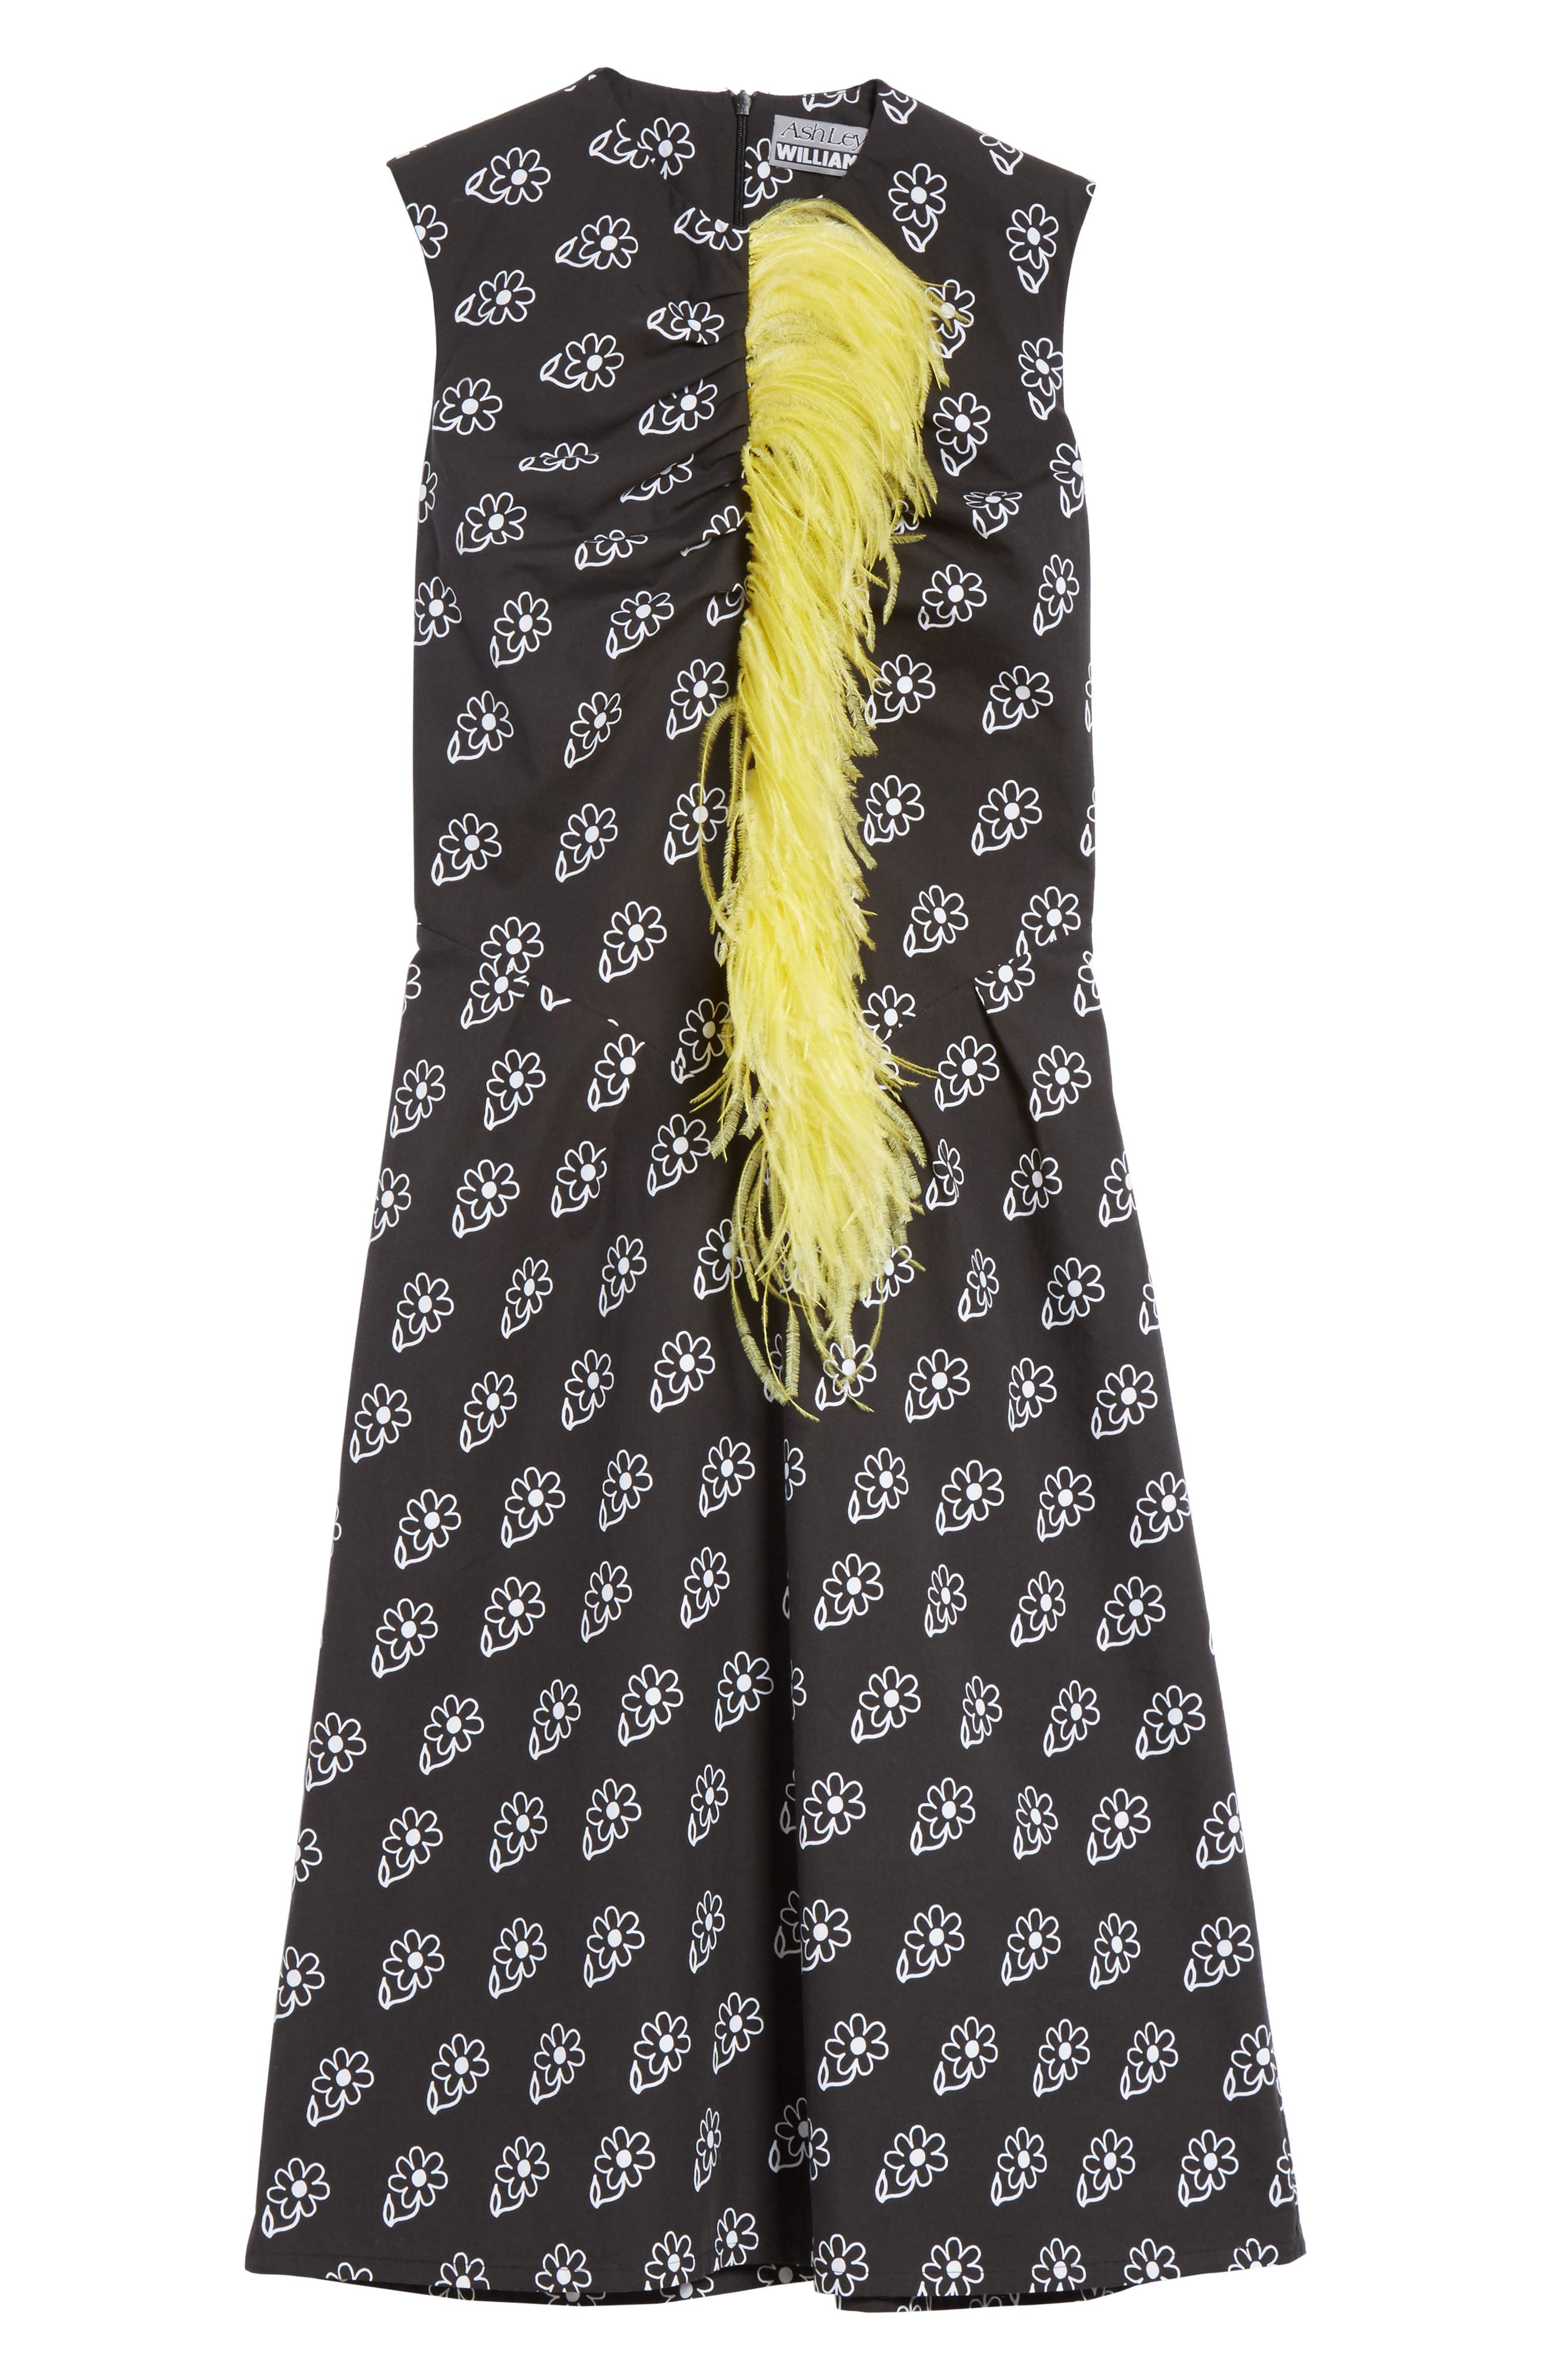 Bunny Sheath Dress with Ostrich Feather Trim,                             Alternate thumbnail 6, color,                             Black Daisy